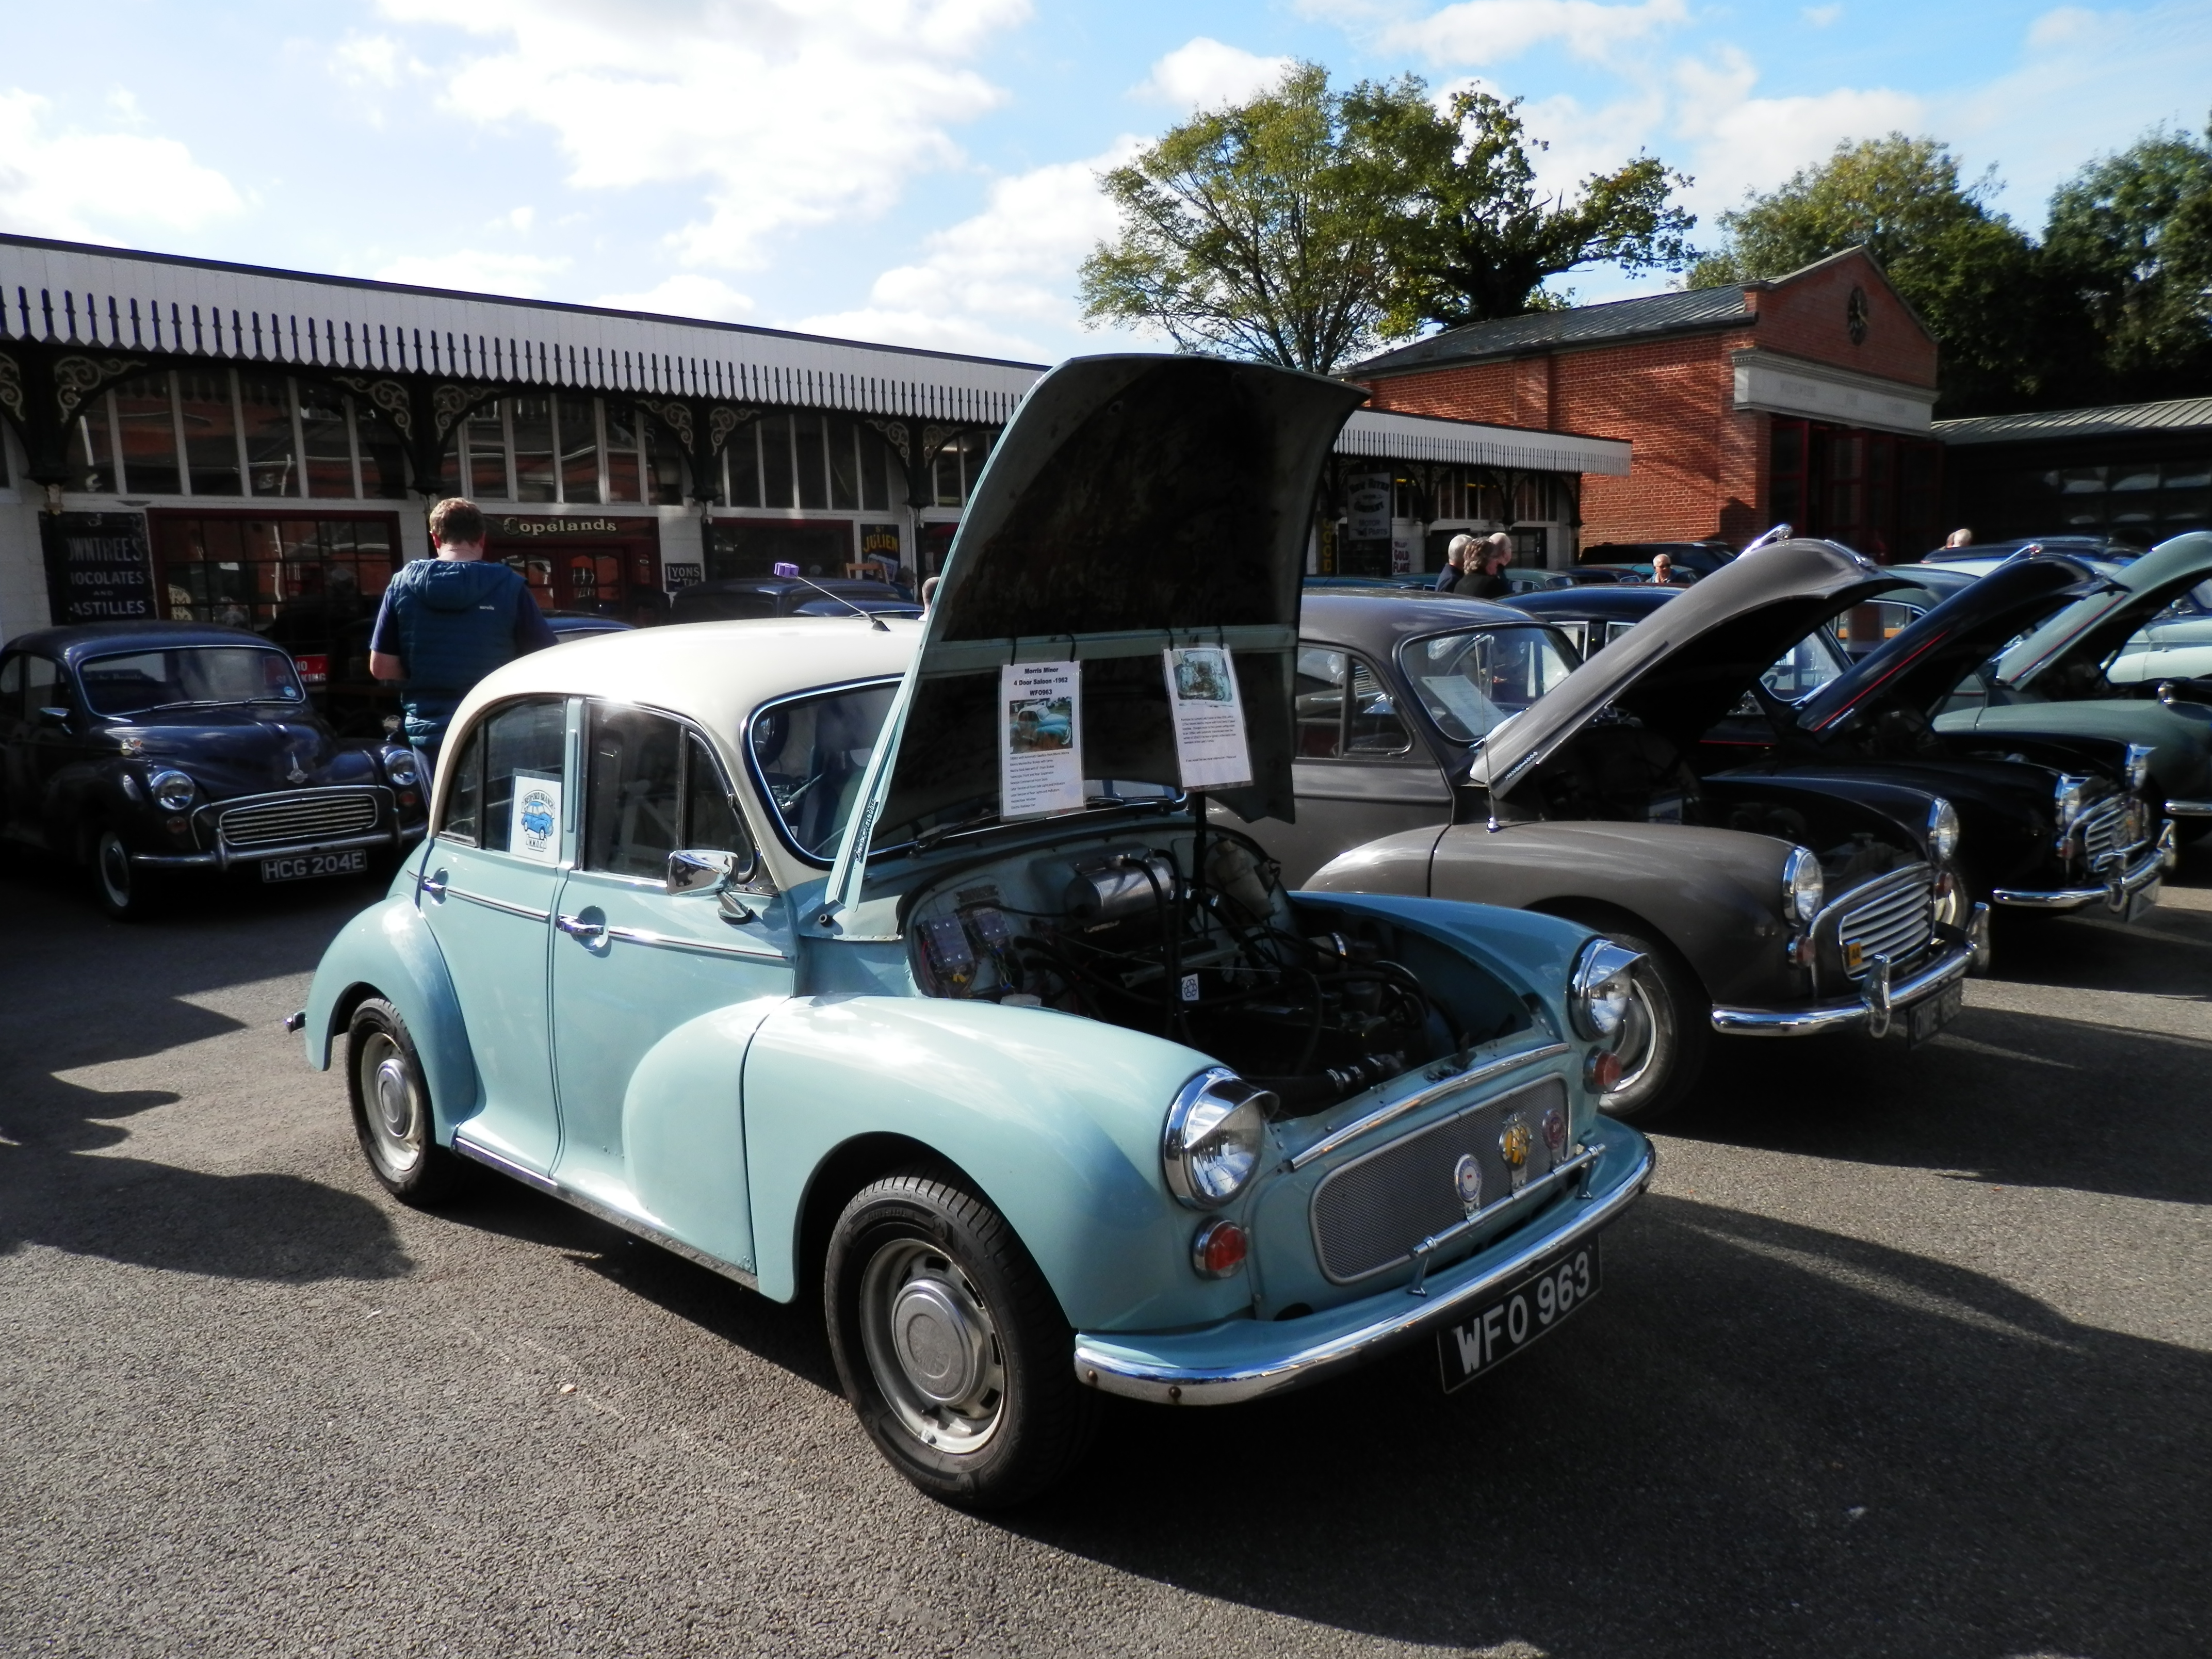 Morris Minor Day - 30 September 2018